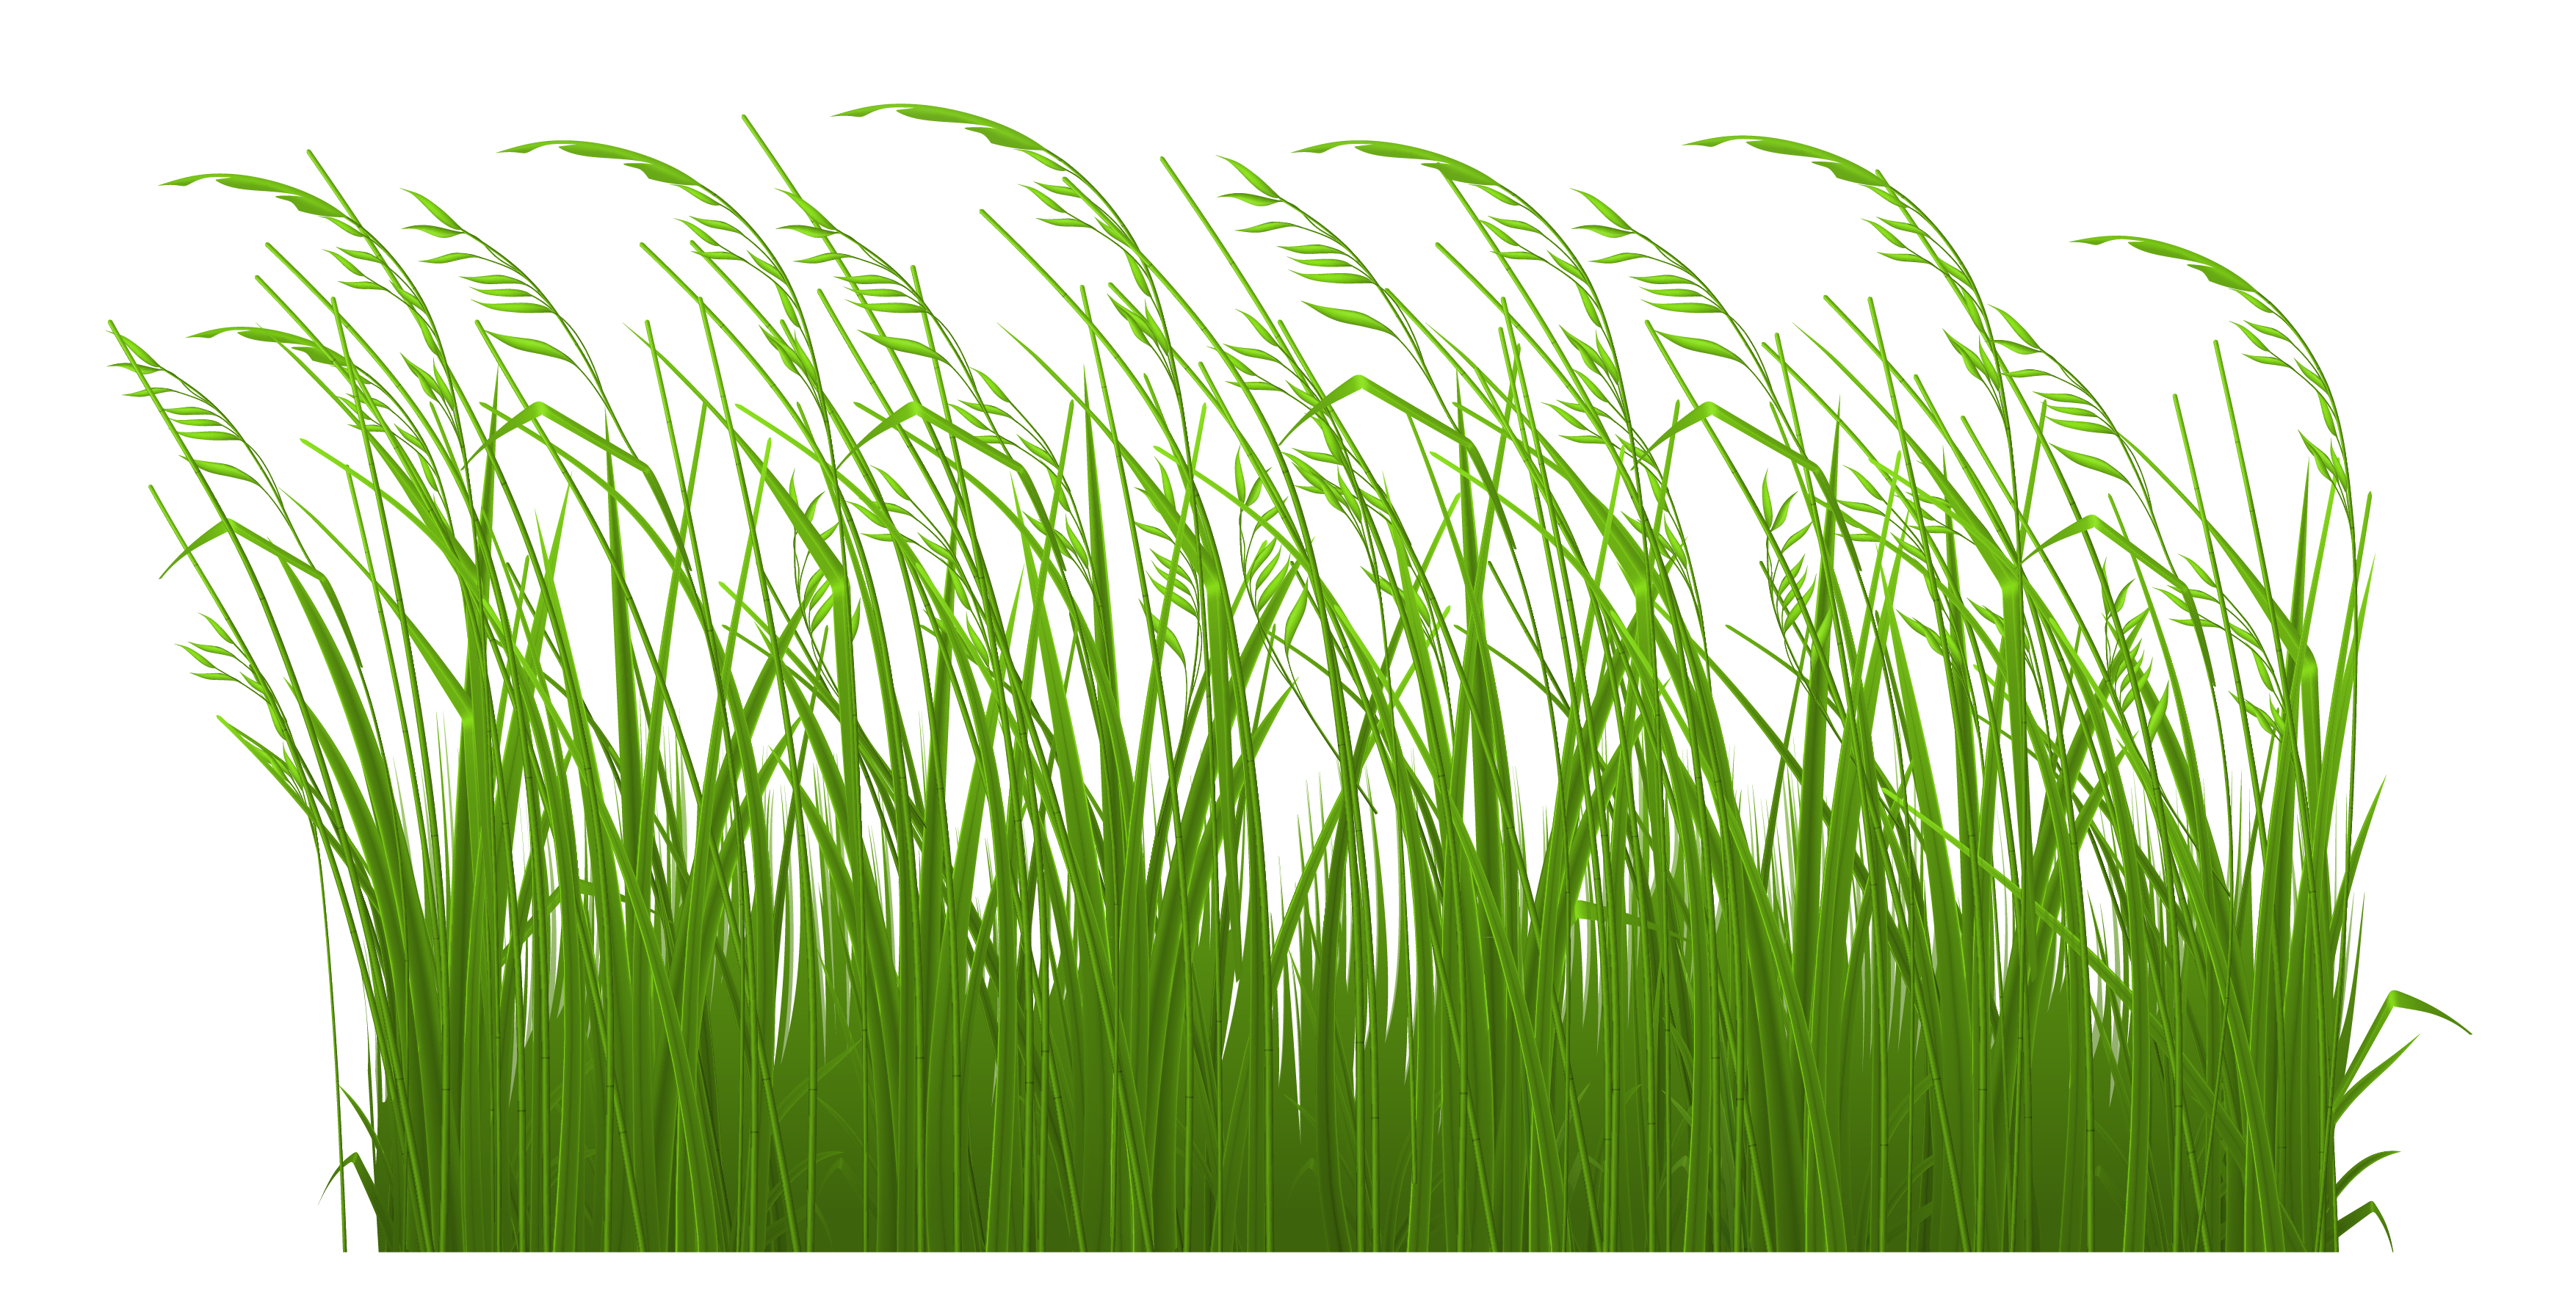 Free clip art pictures. Vines clipart grass